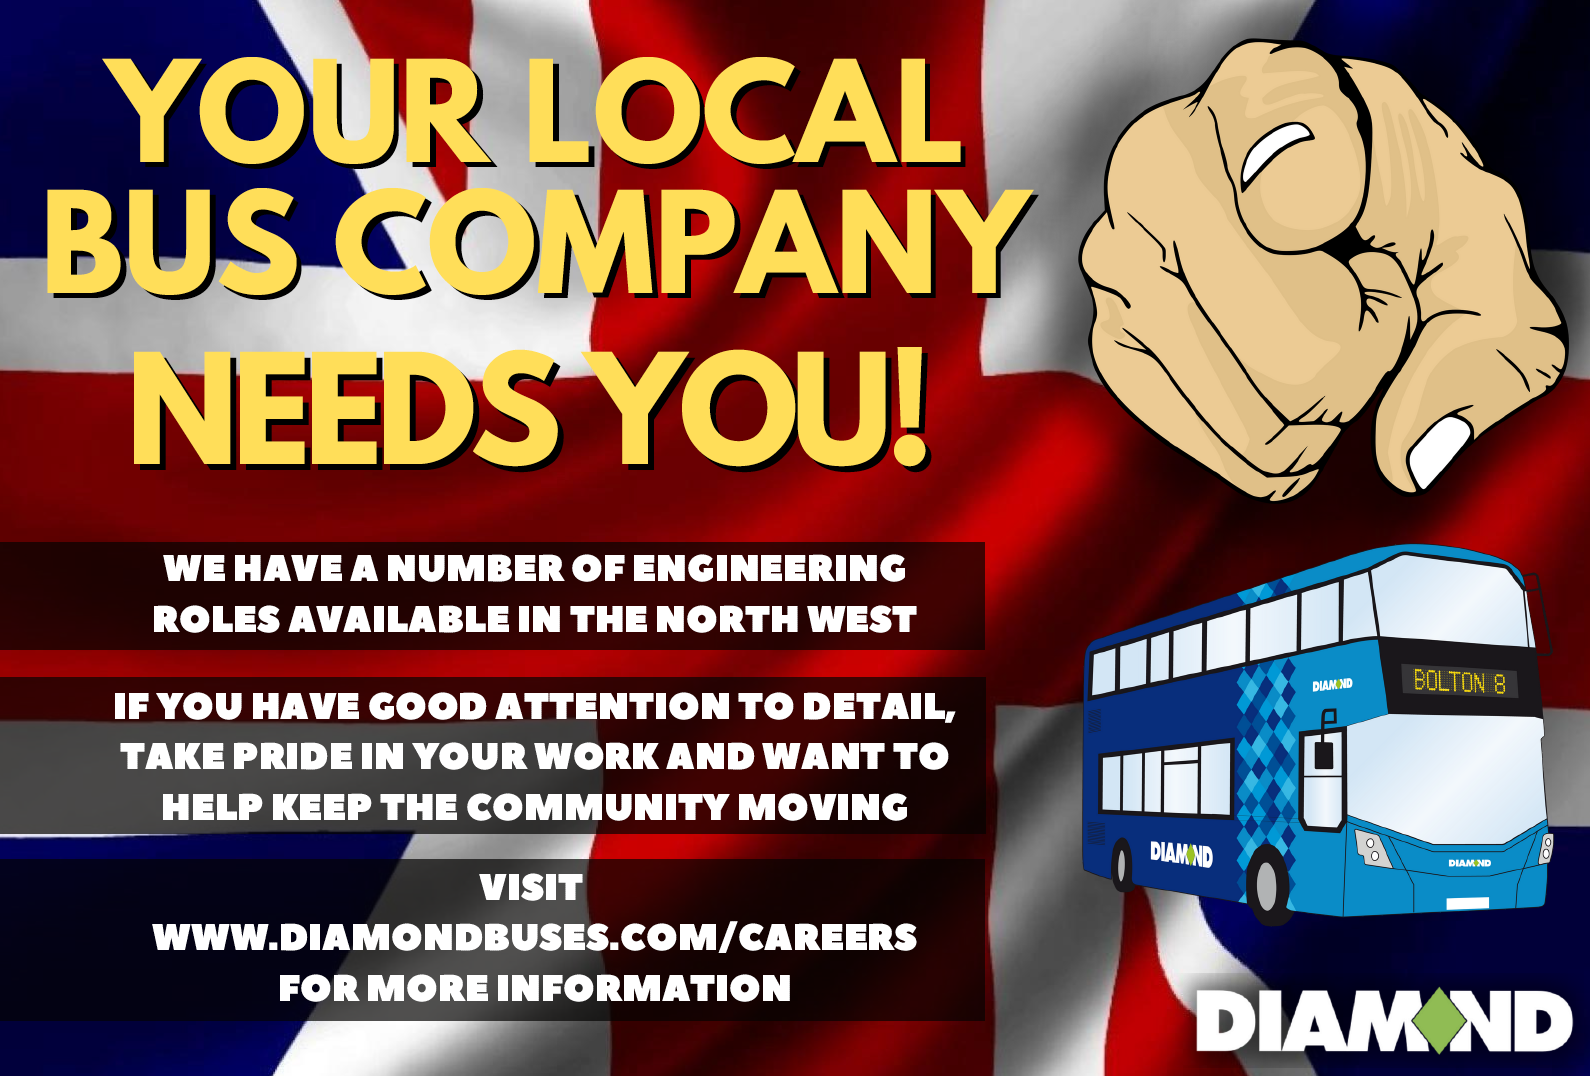 Your local bus company needs you